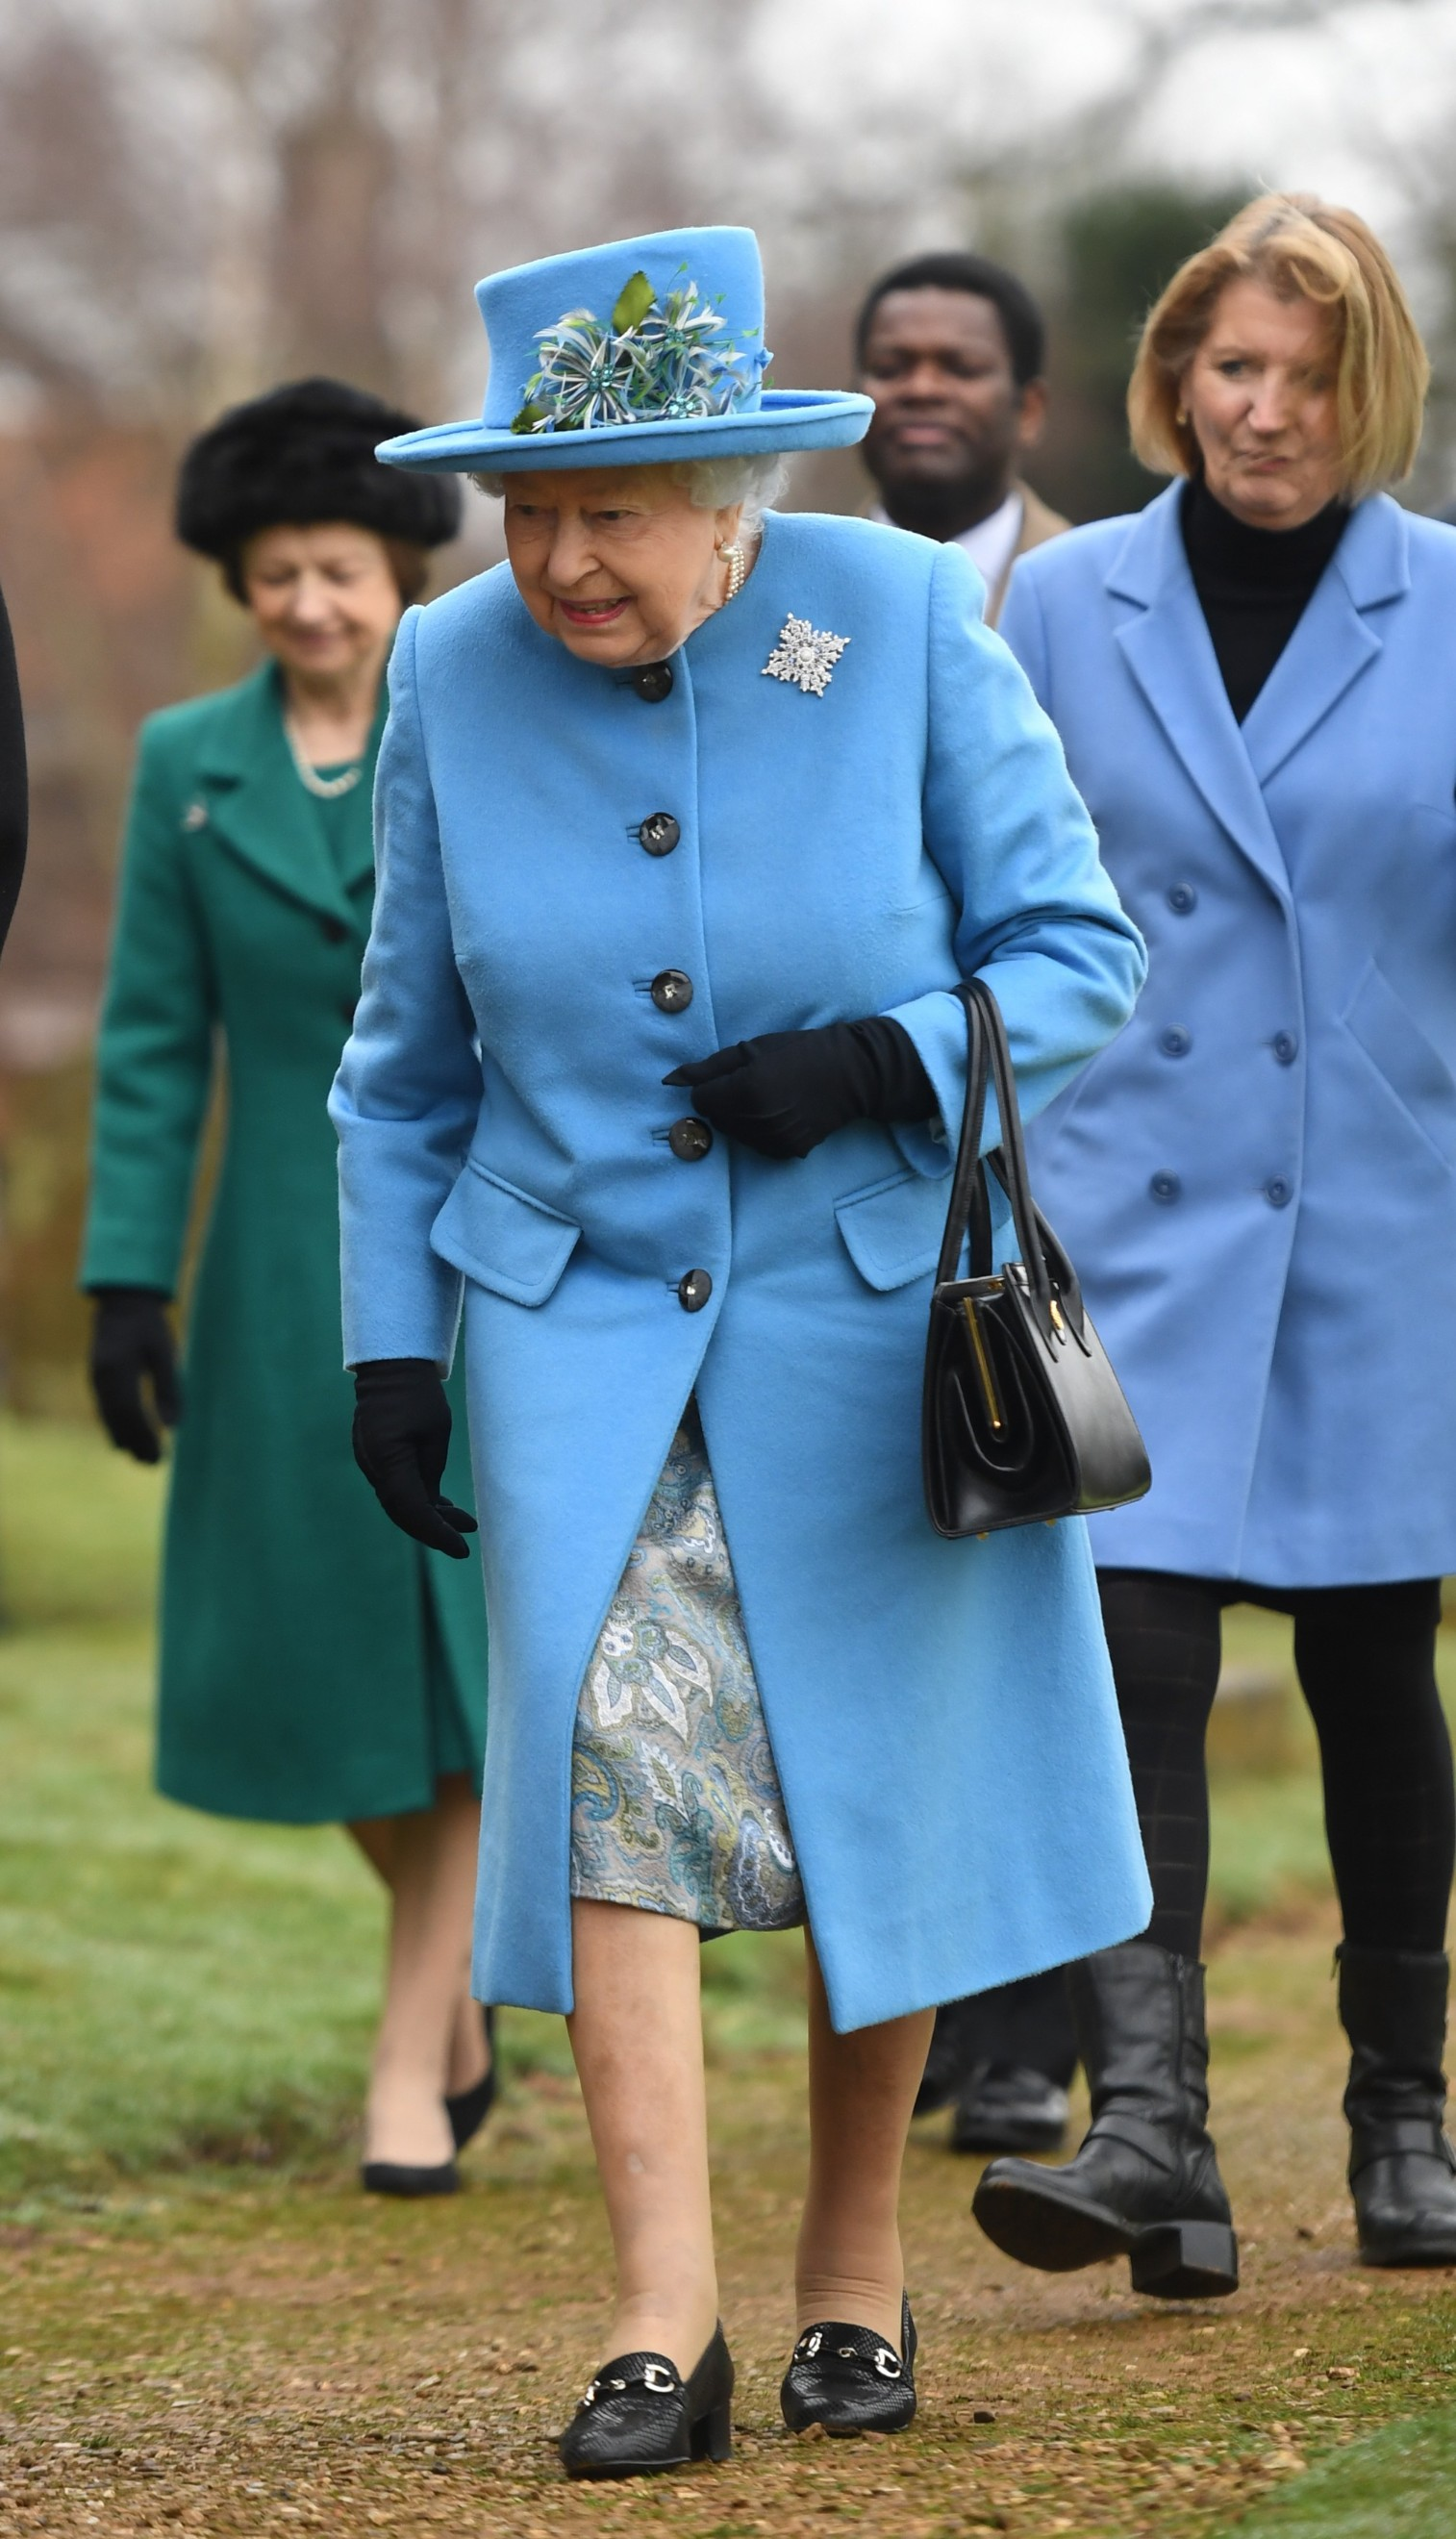 Queen Elizabeth II arrives at St Peter and St Paul church, in West Newton, Norfolk, to attend a Sunday service., Image: 496048463, License: Rights-managed, Restrictions: , Model Release: no, Credit line: Joe Giddens / PA Images / Profimedia